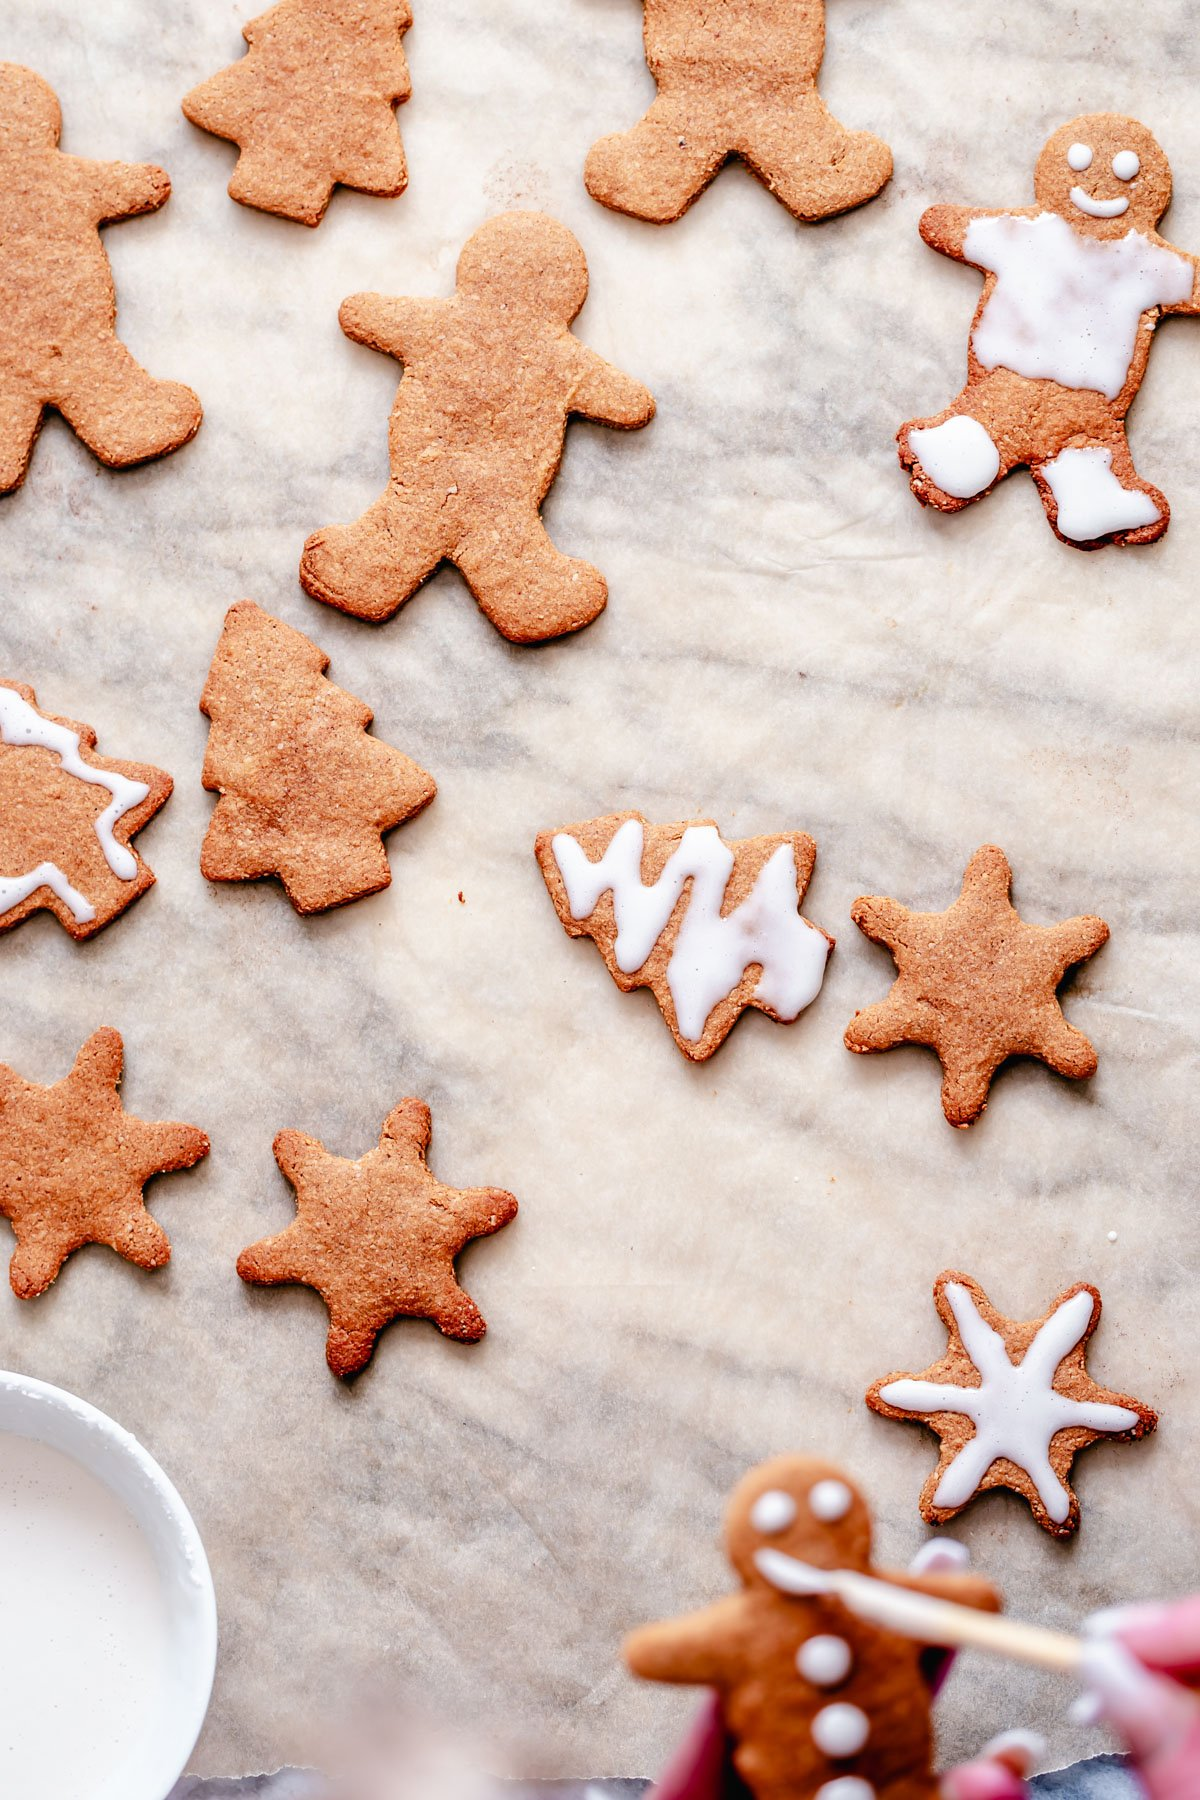 iced vegan spiced gingerbread cookies on a marble countertop